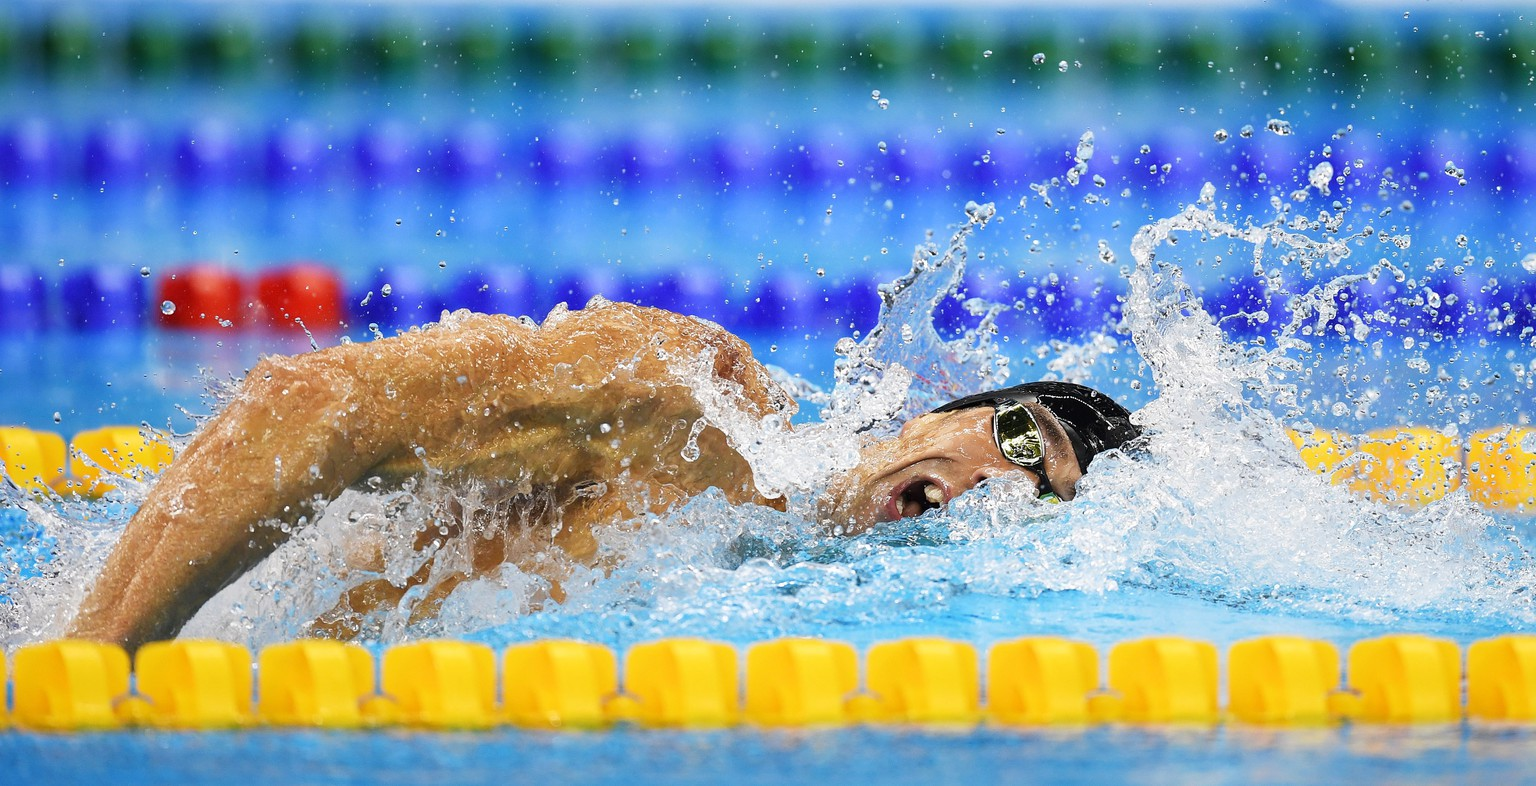 epa05469815 Michael Phelps of USA in action during the men's 4x200m Freestyle Relay race of the Rio 2016 Olympic Games Swimming events at Olympic Aquatics Stadium at the Olympic Park in Rio de Janeiro, Brazil, 09 August  2016.  EPA/BERND THISSEN